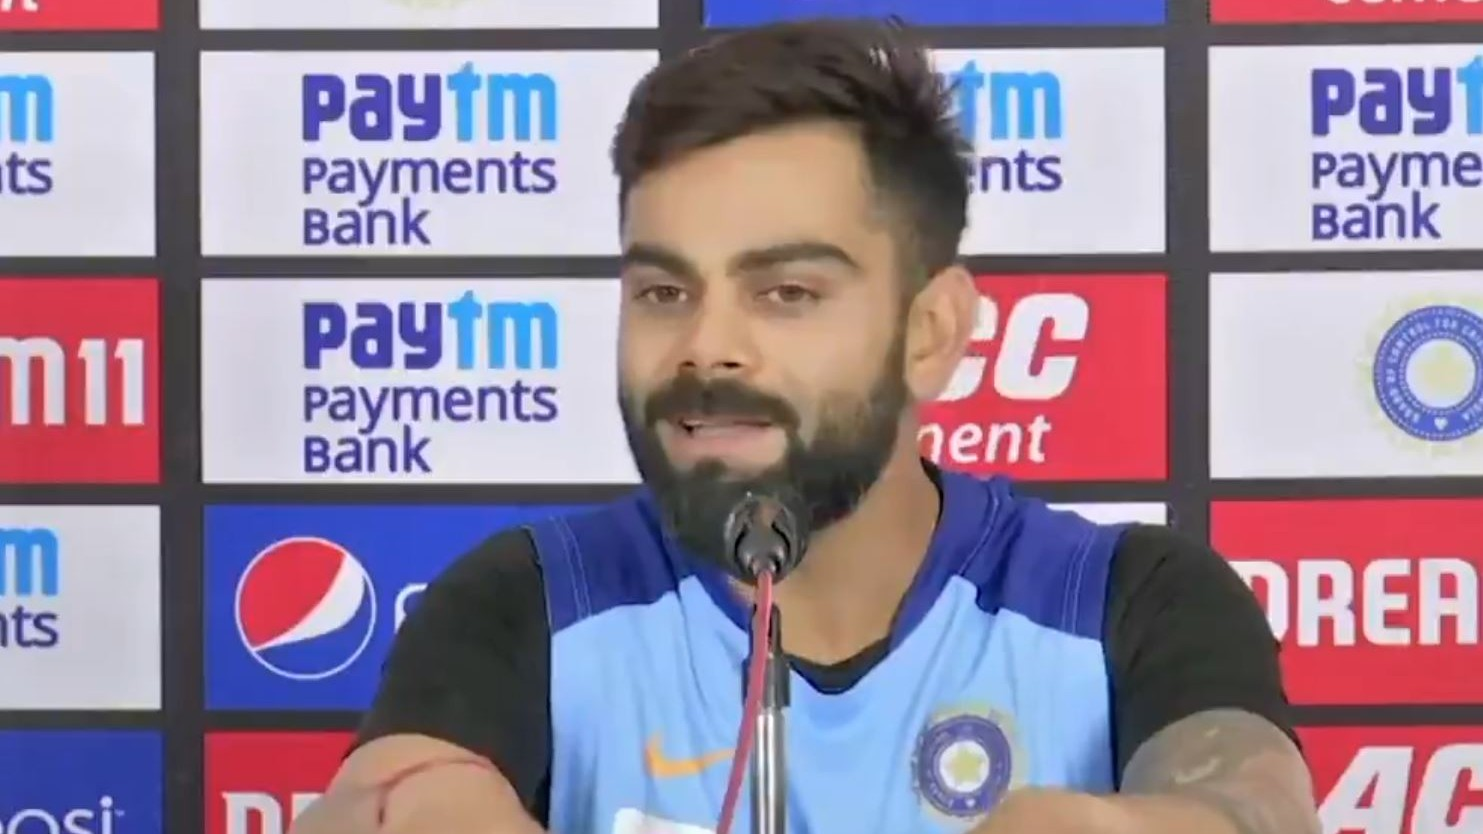 IND v WI 2019: WATCH- Virat Kohli defends India's no.5 spot in T20I ranking; says haven't fielded strongest team yet